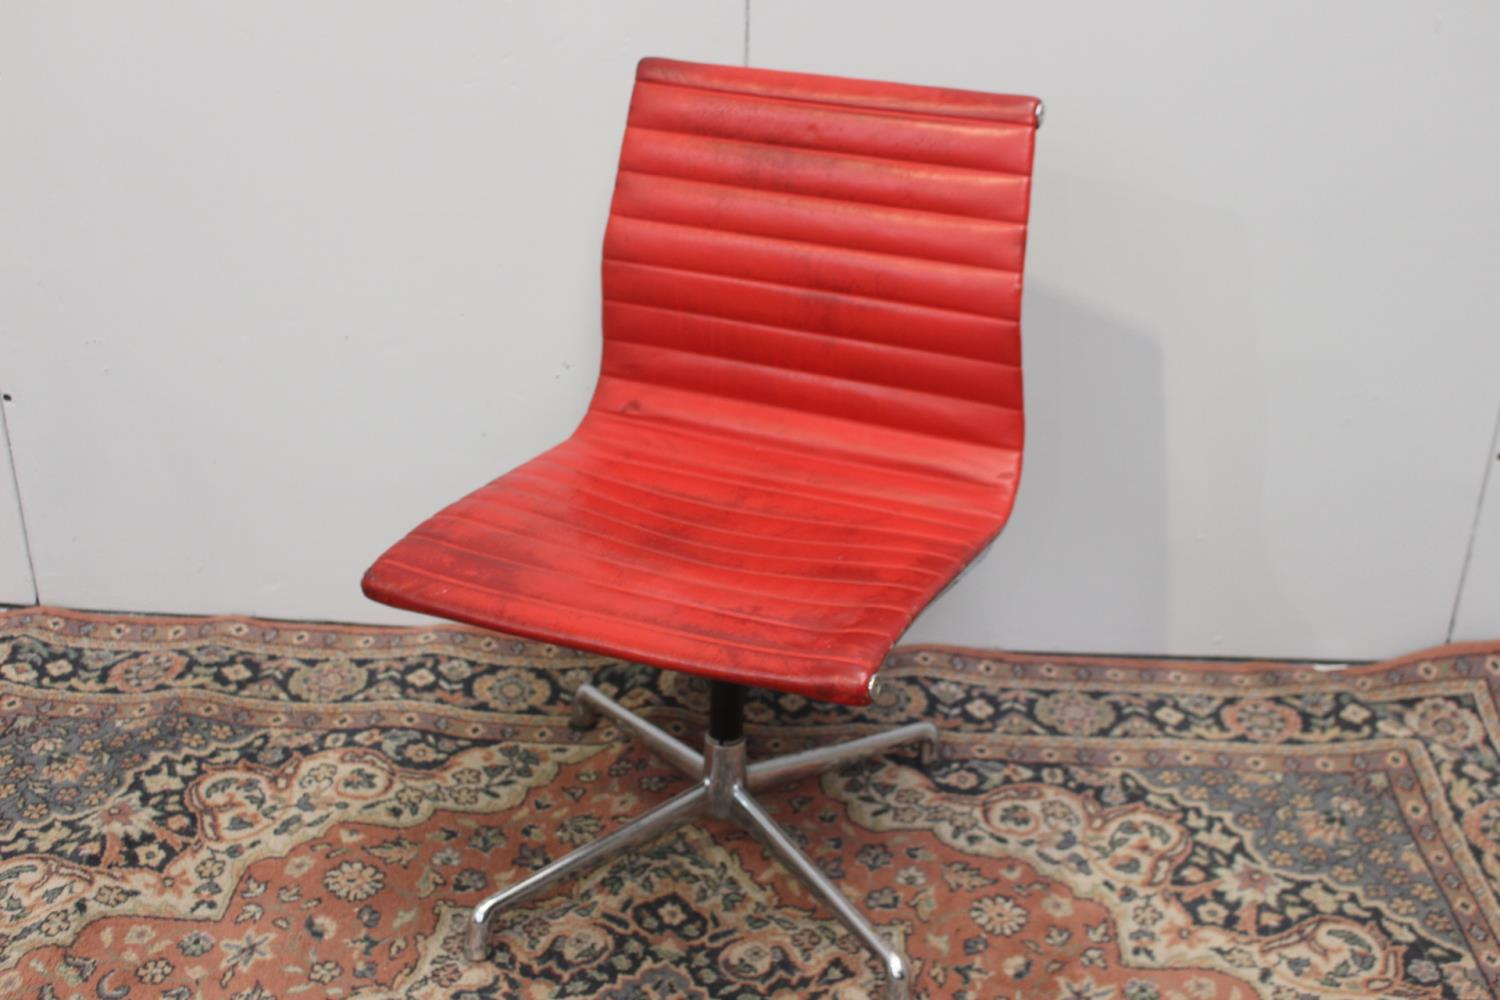 1960's chome and leather swivel office chair